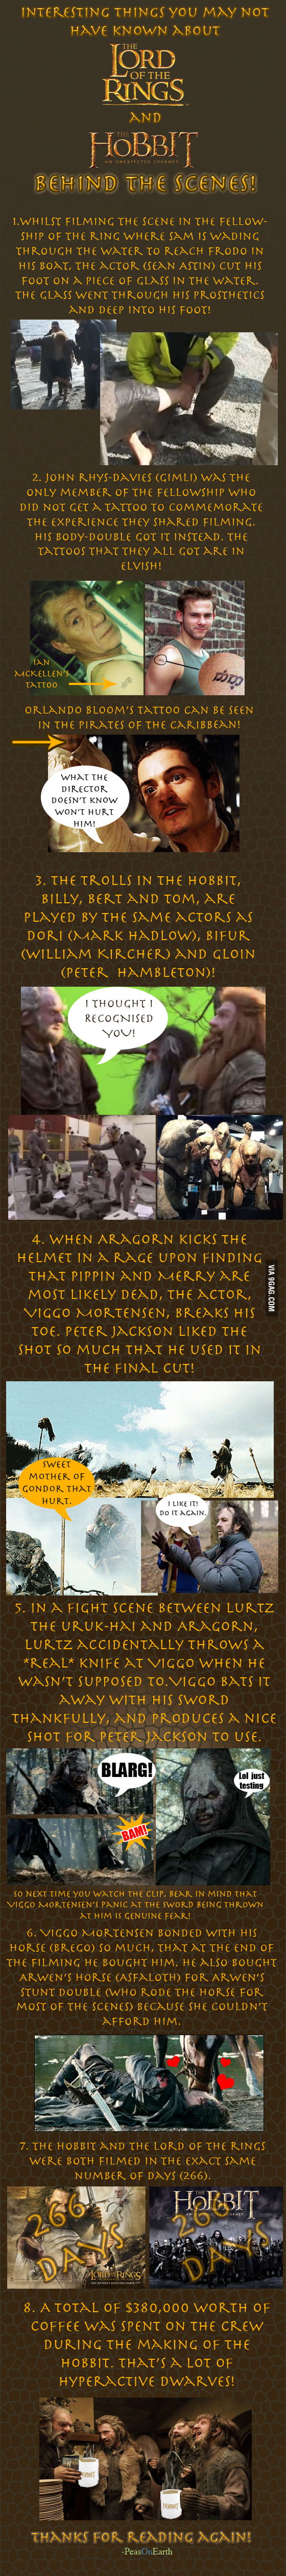 Part two, for all you Tolkien fans!